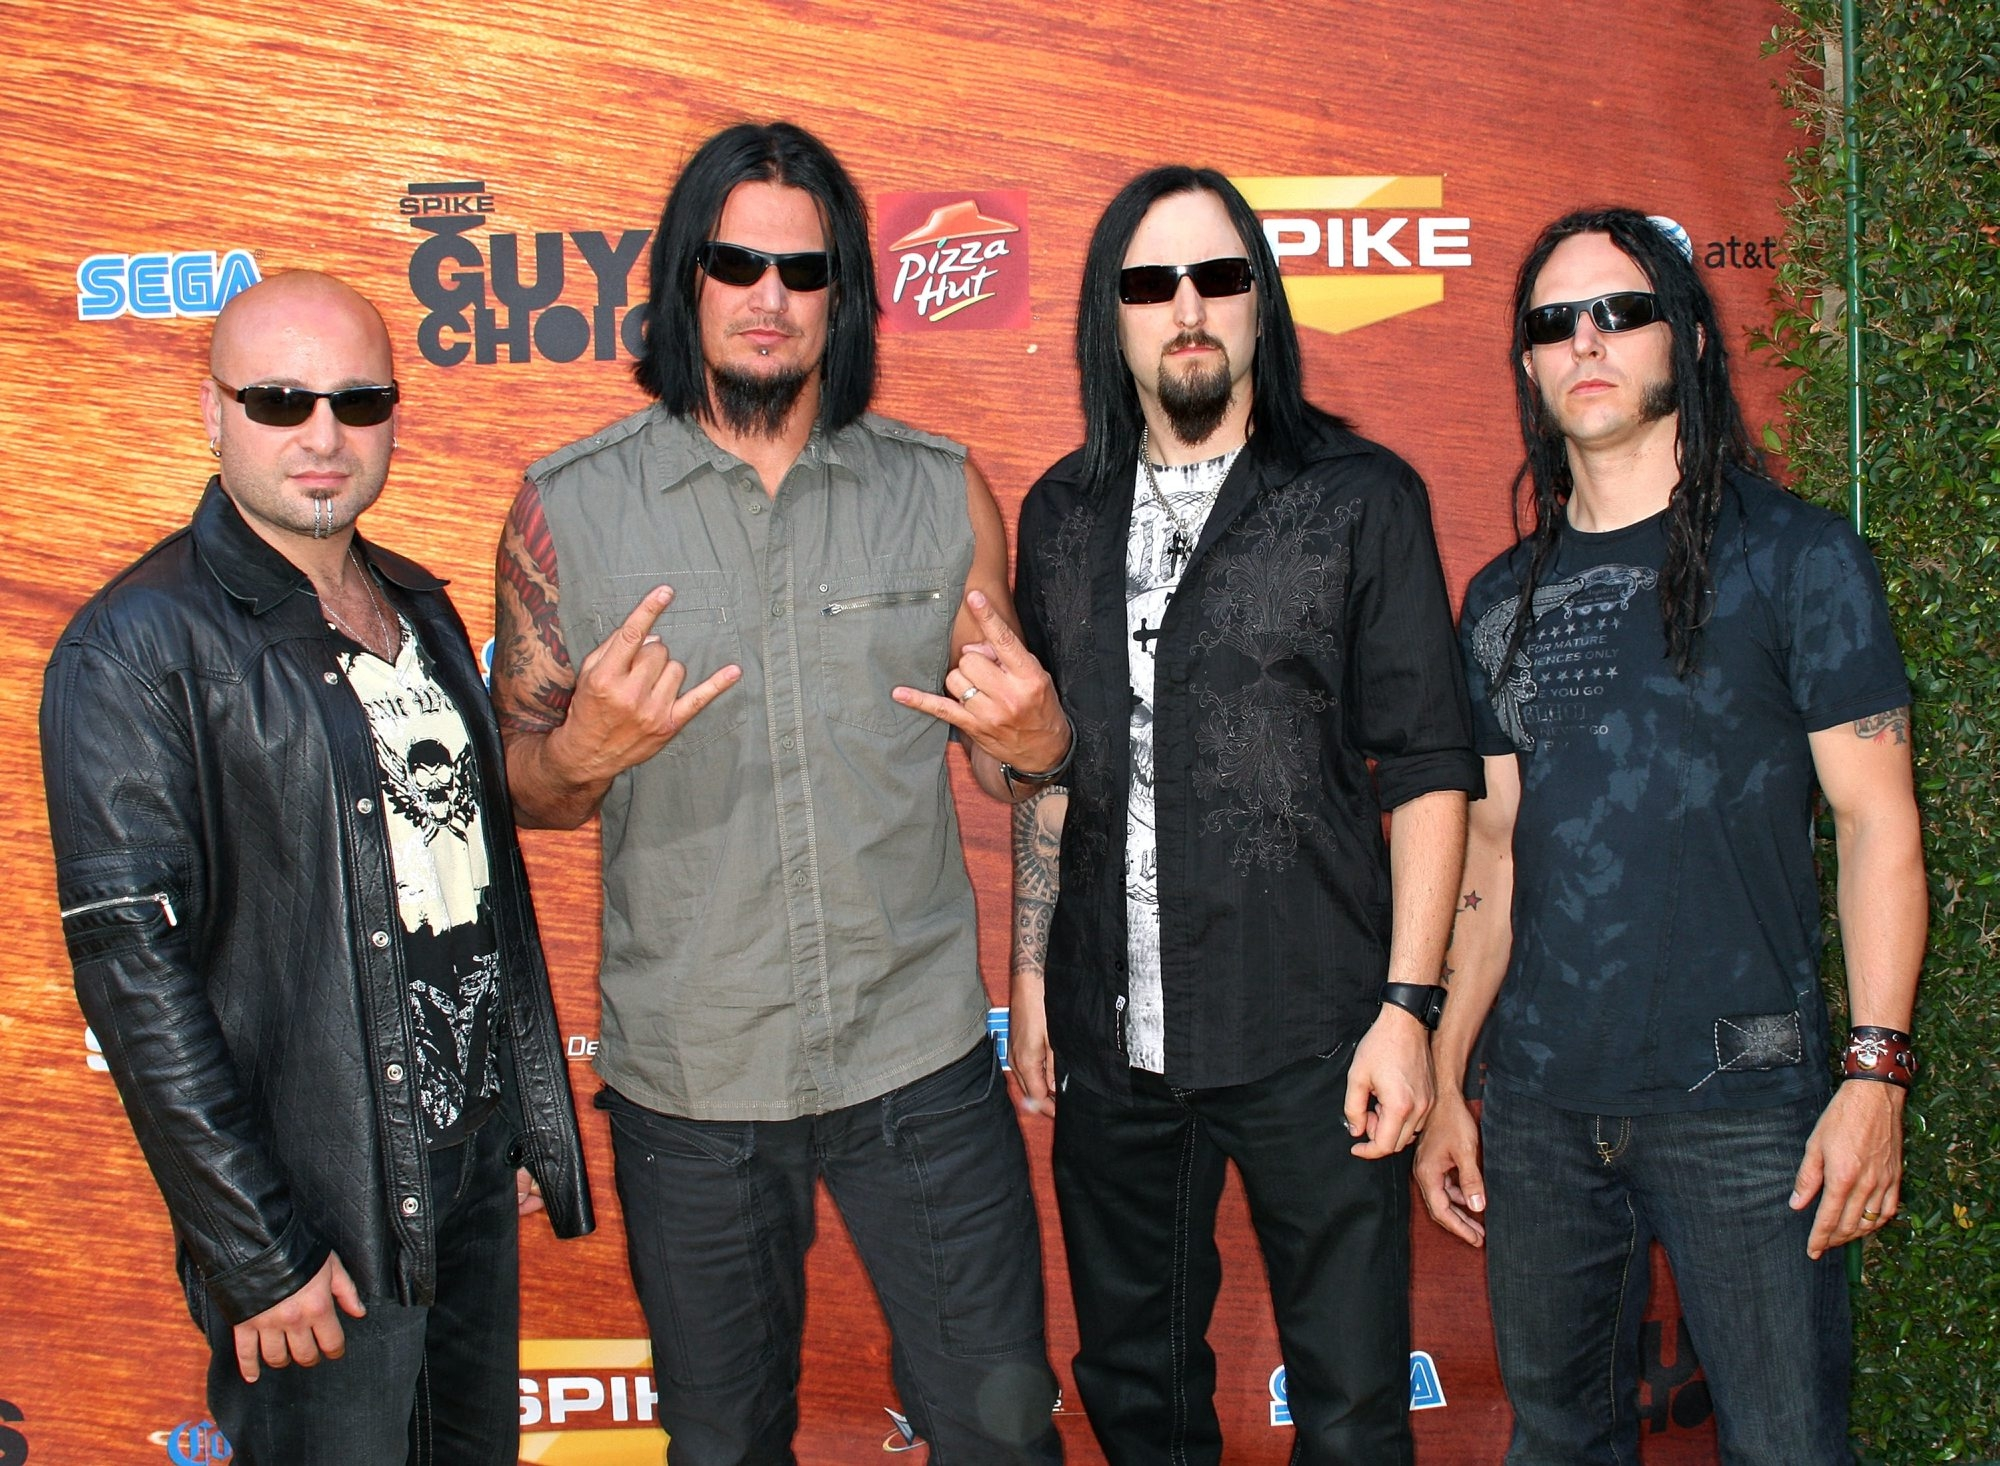 """CULVER CITY, CA - MAY 30:  Members of the band Disturbed arrive at the taping for Spike TV's 2nd Annual """"Guys Choice"""" Awards held at Sony Studios on May 30, 2008 in Culver City, California.  The show airs on June 22, 2008 at 10PM ET/PT on Spike TV.  (Photo by Frederick M. Brown/Getty Images)"""